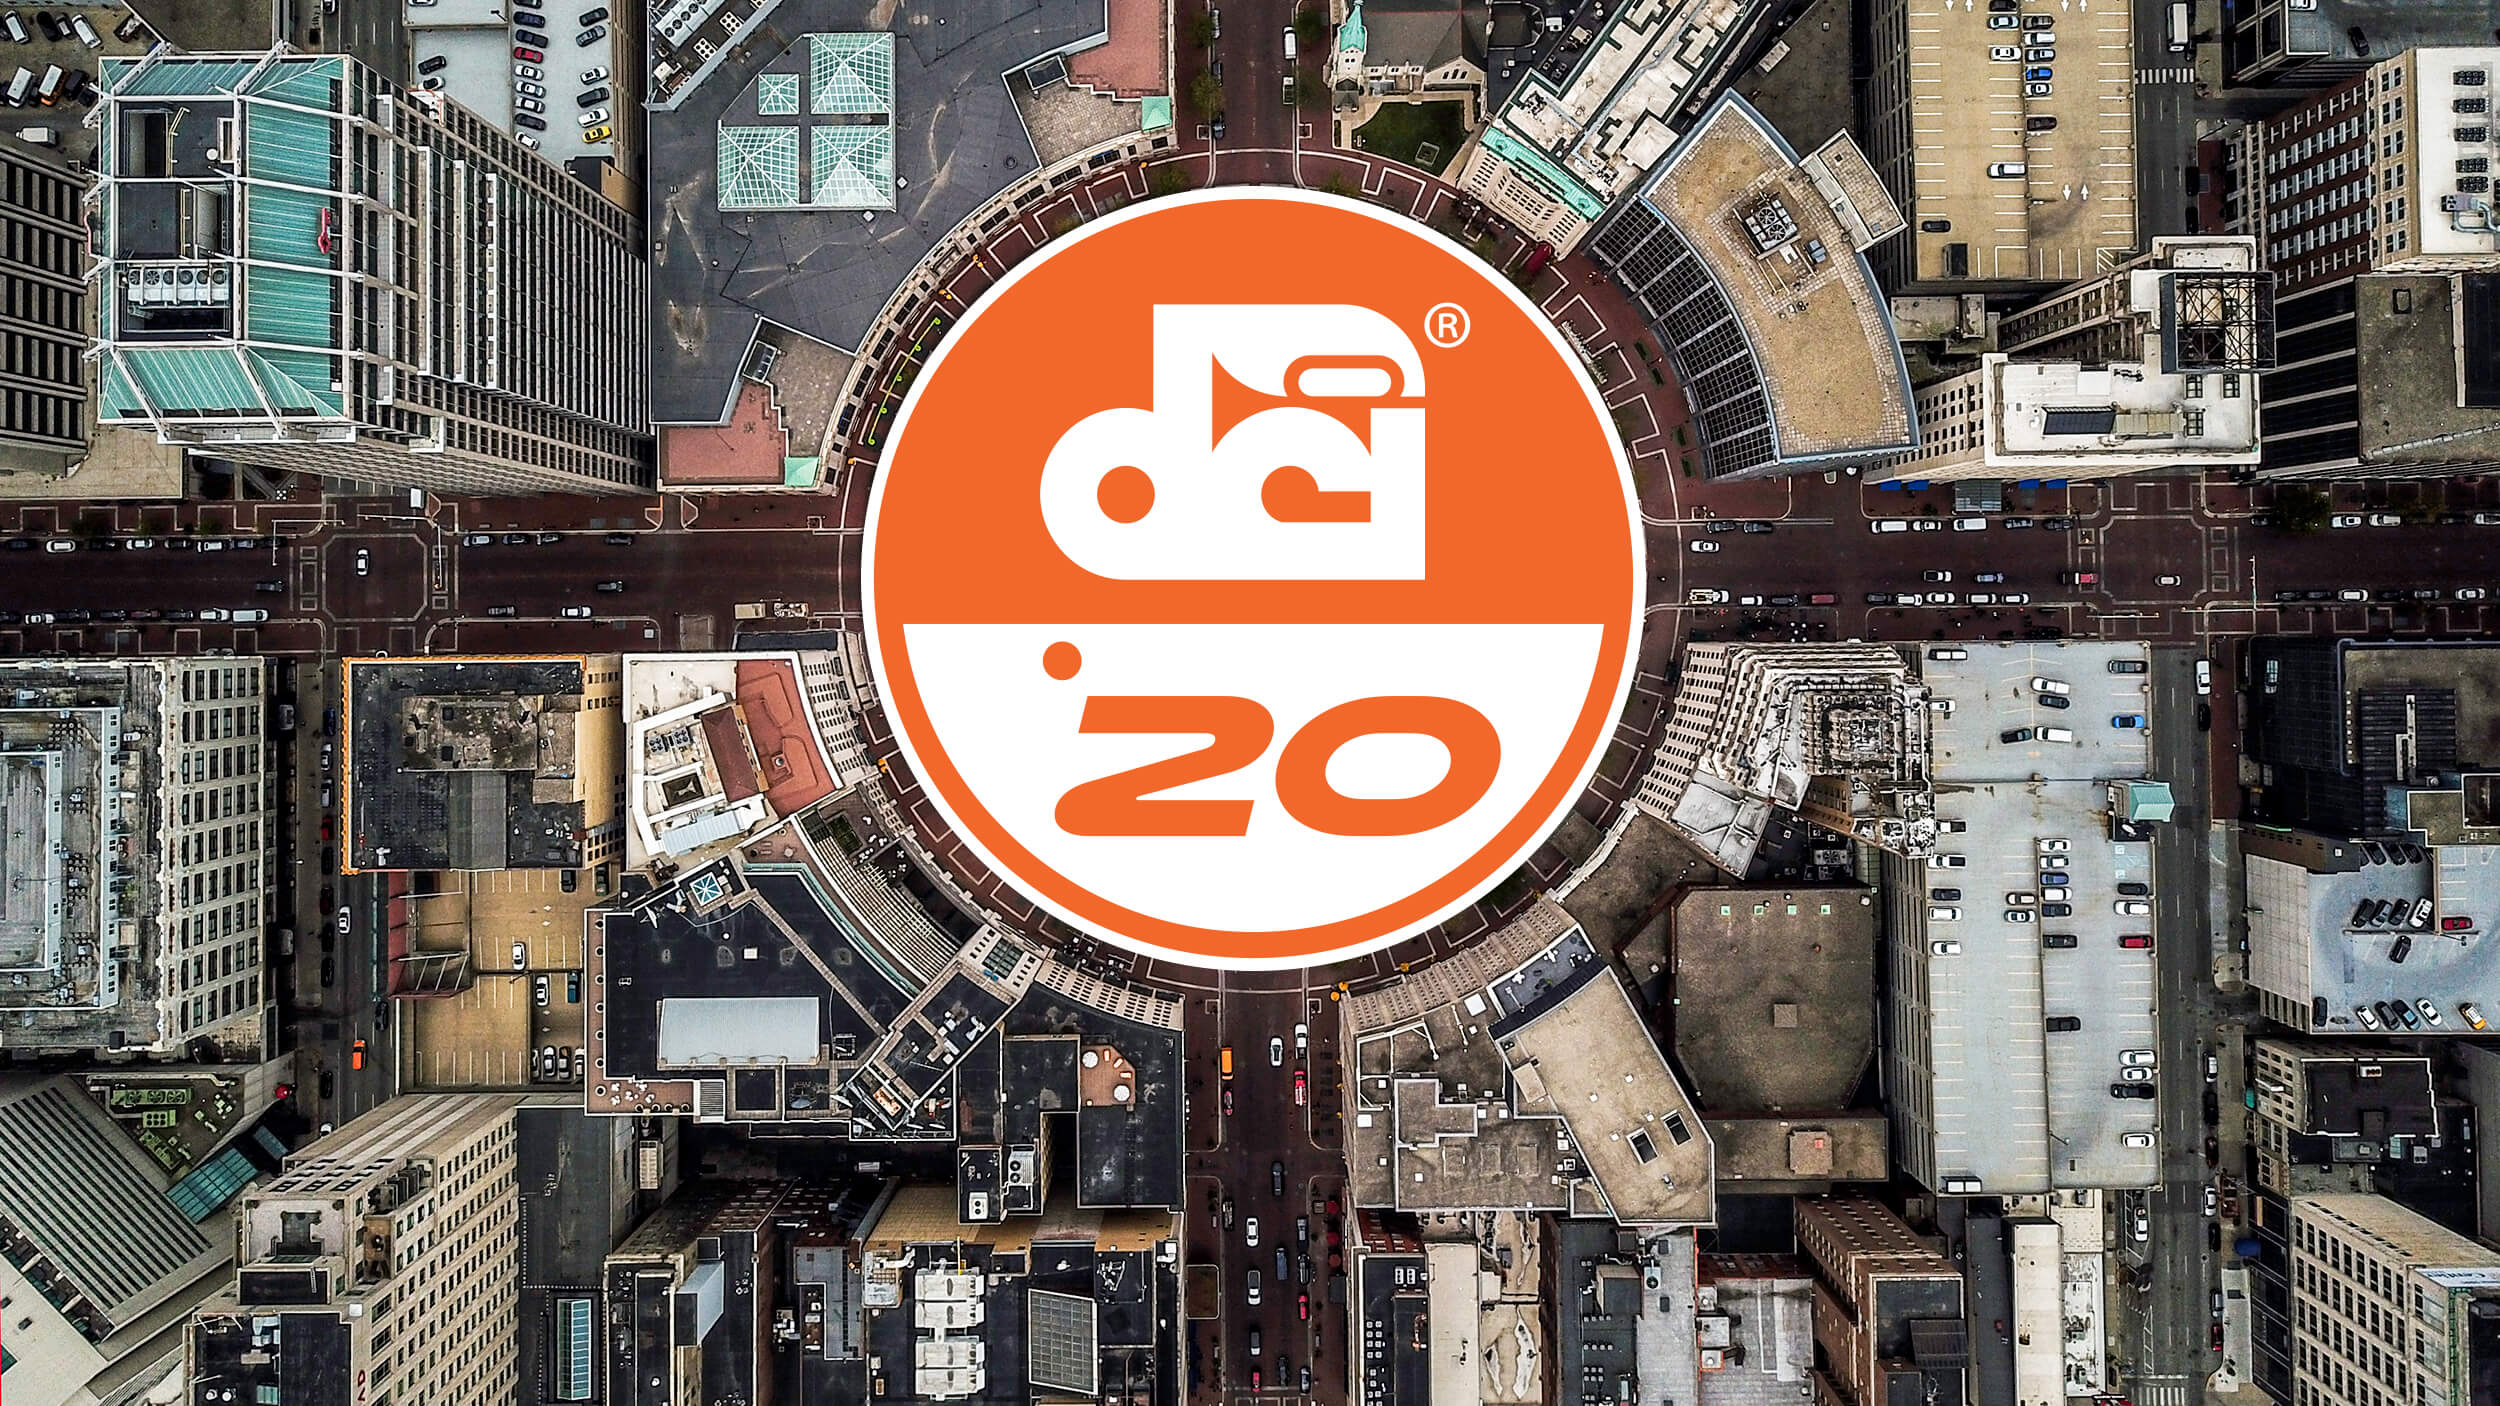 2020 DCI Annual Meeting and Rules Congress overview